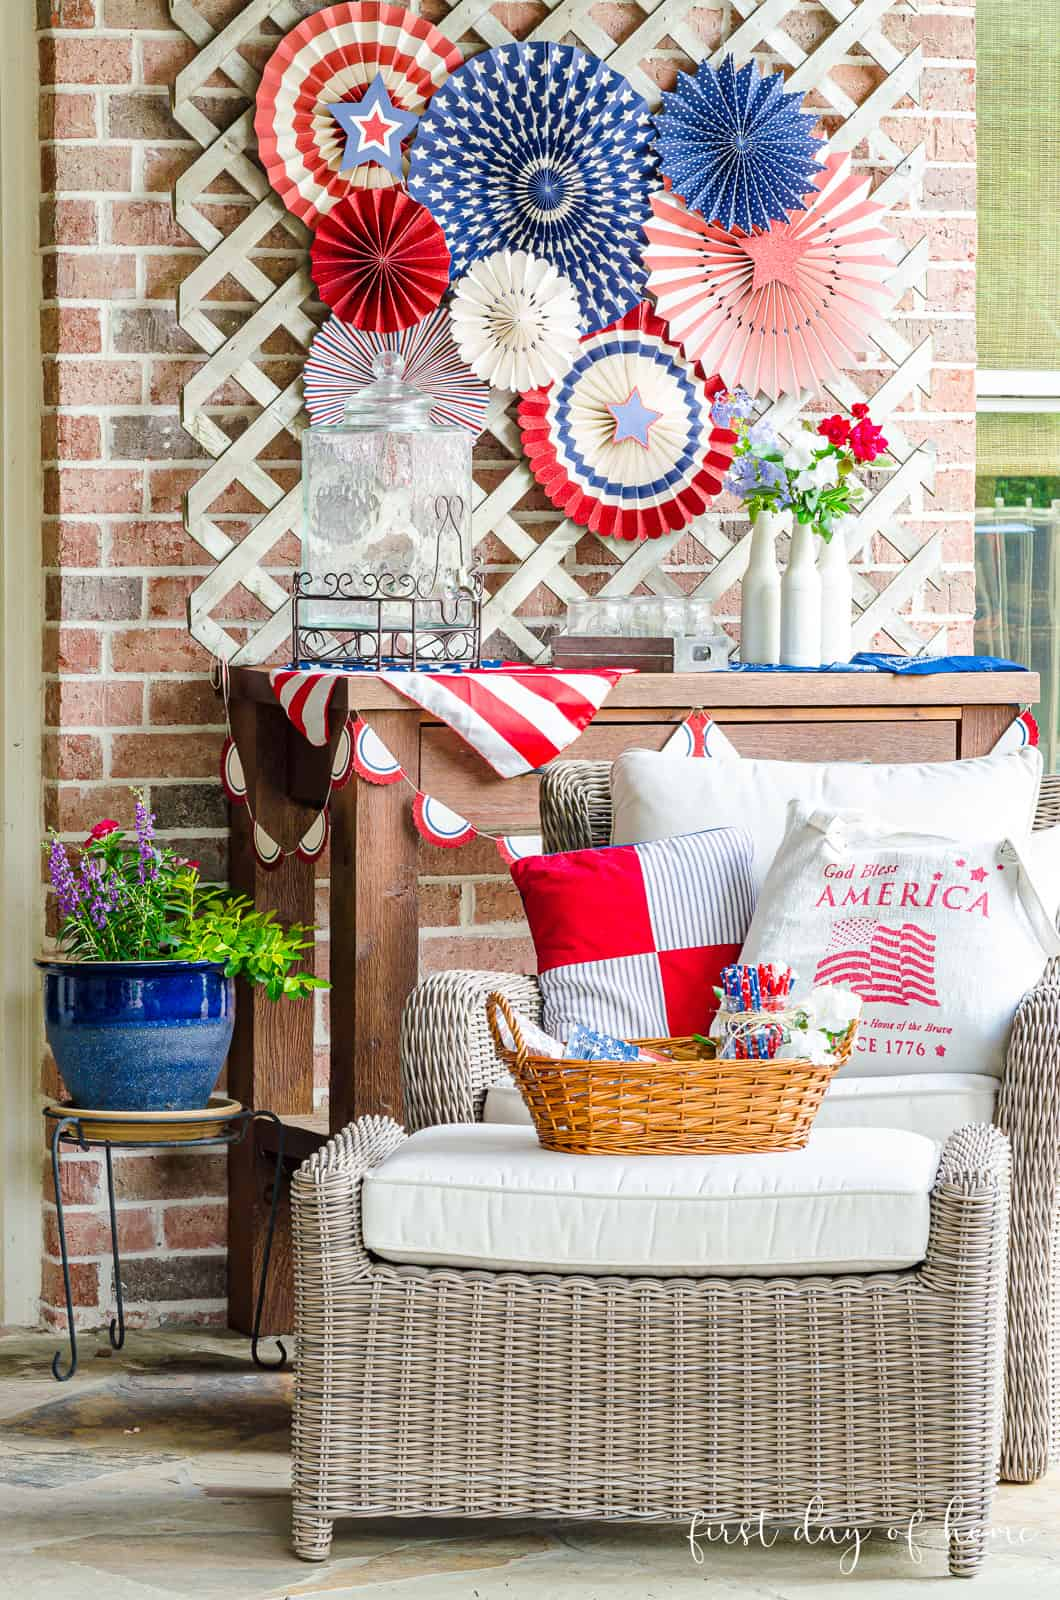 4th of July decorated patio with patriotic fans and decor in red, white and blue